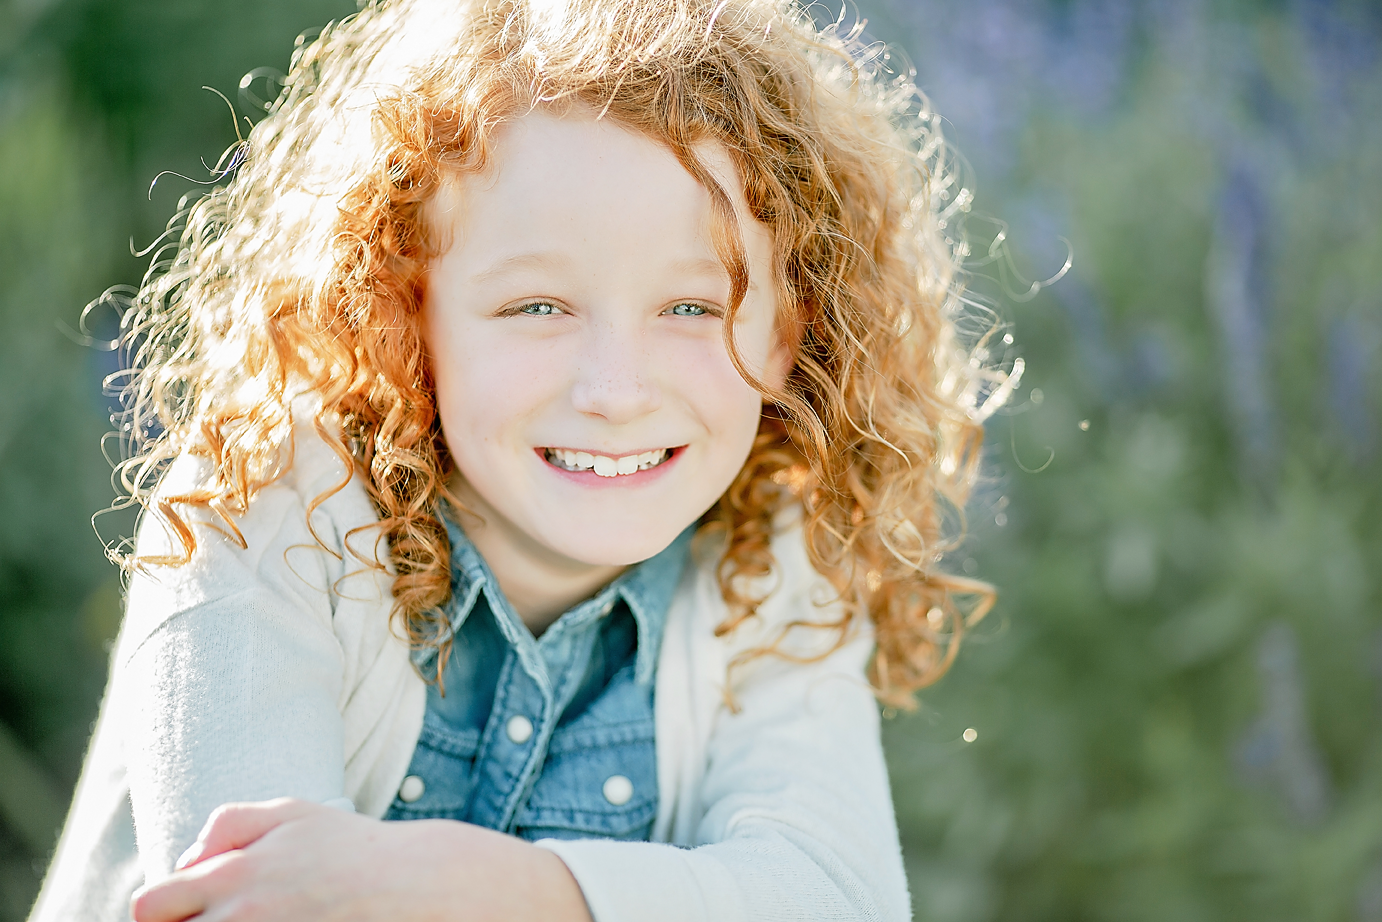 Dallas Family Photographer Southlake Photography Janning kate marie portraiture 4.png